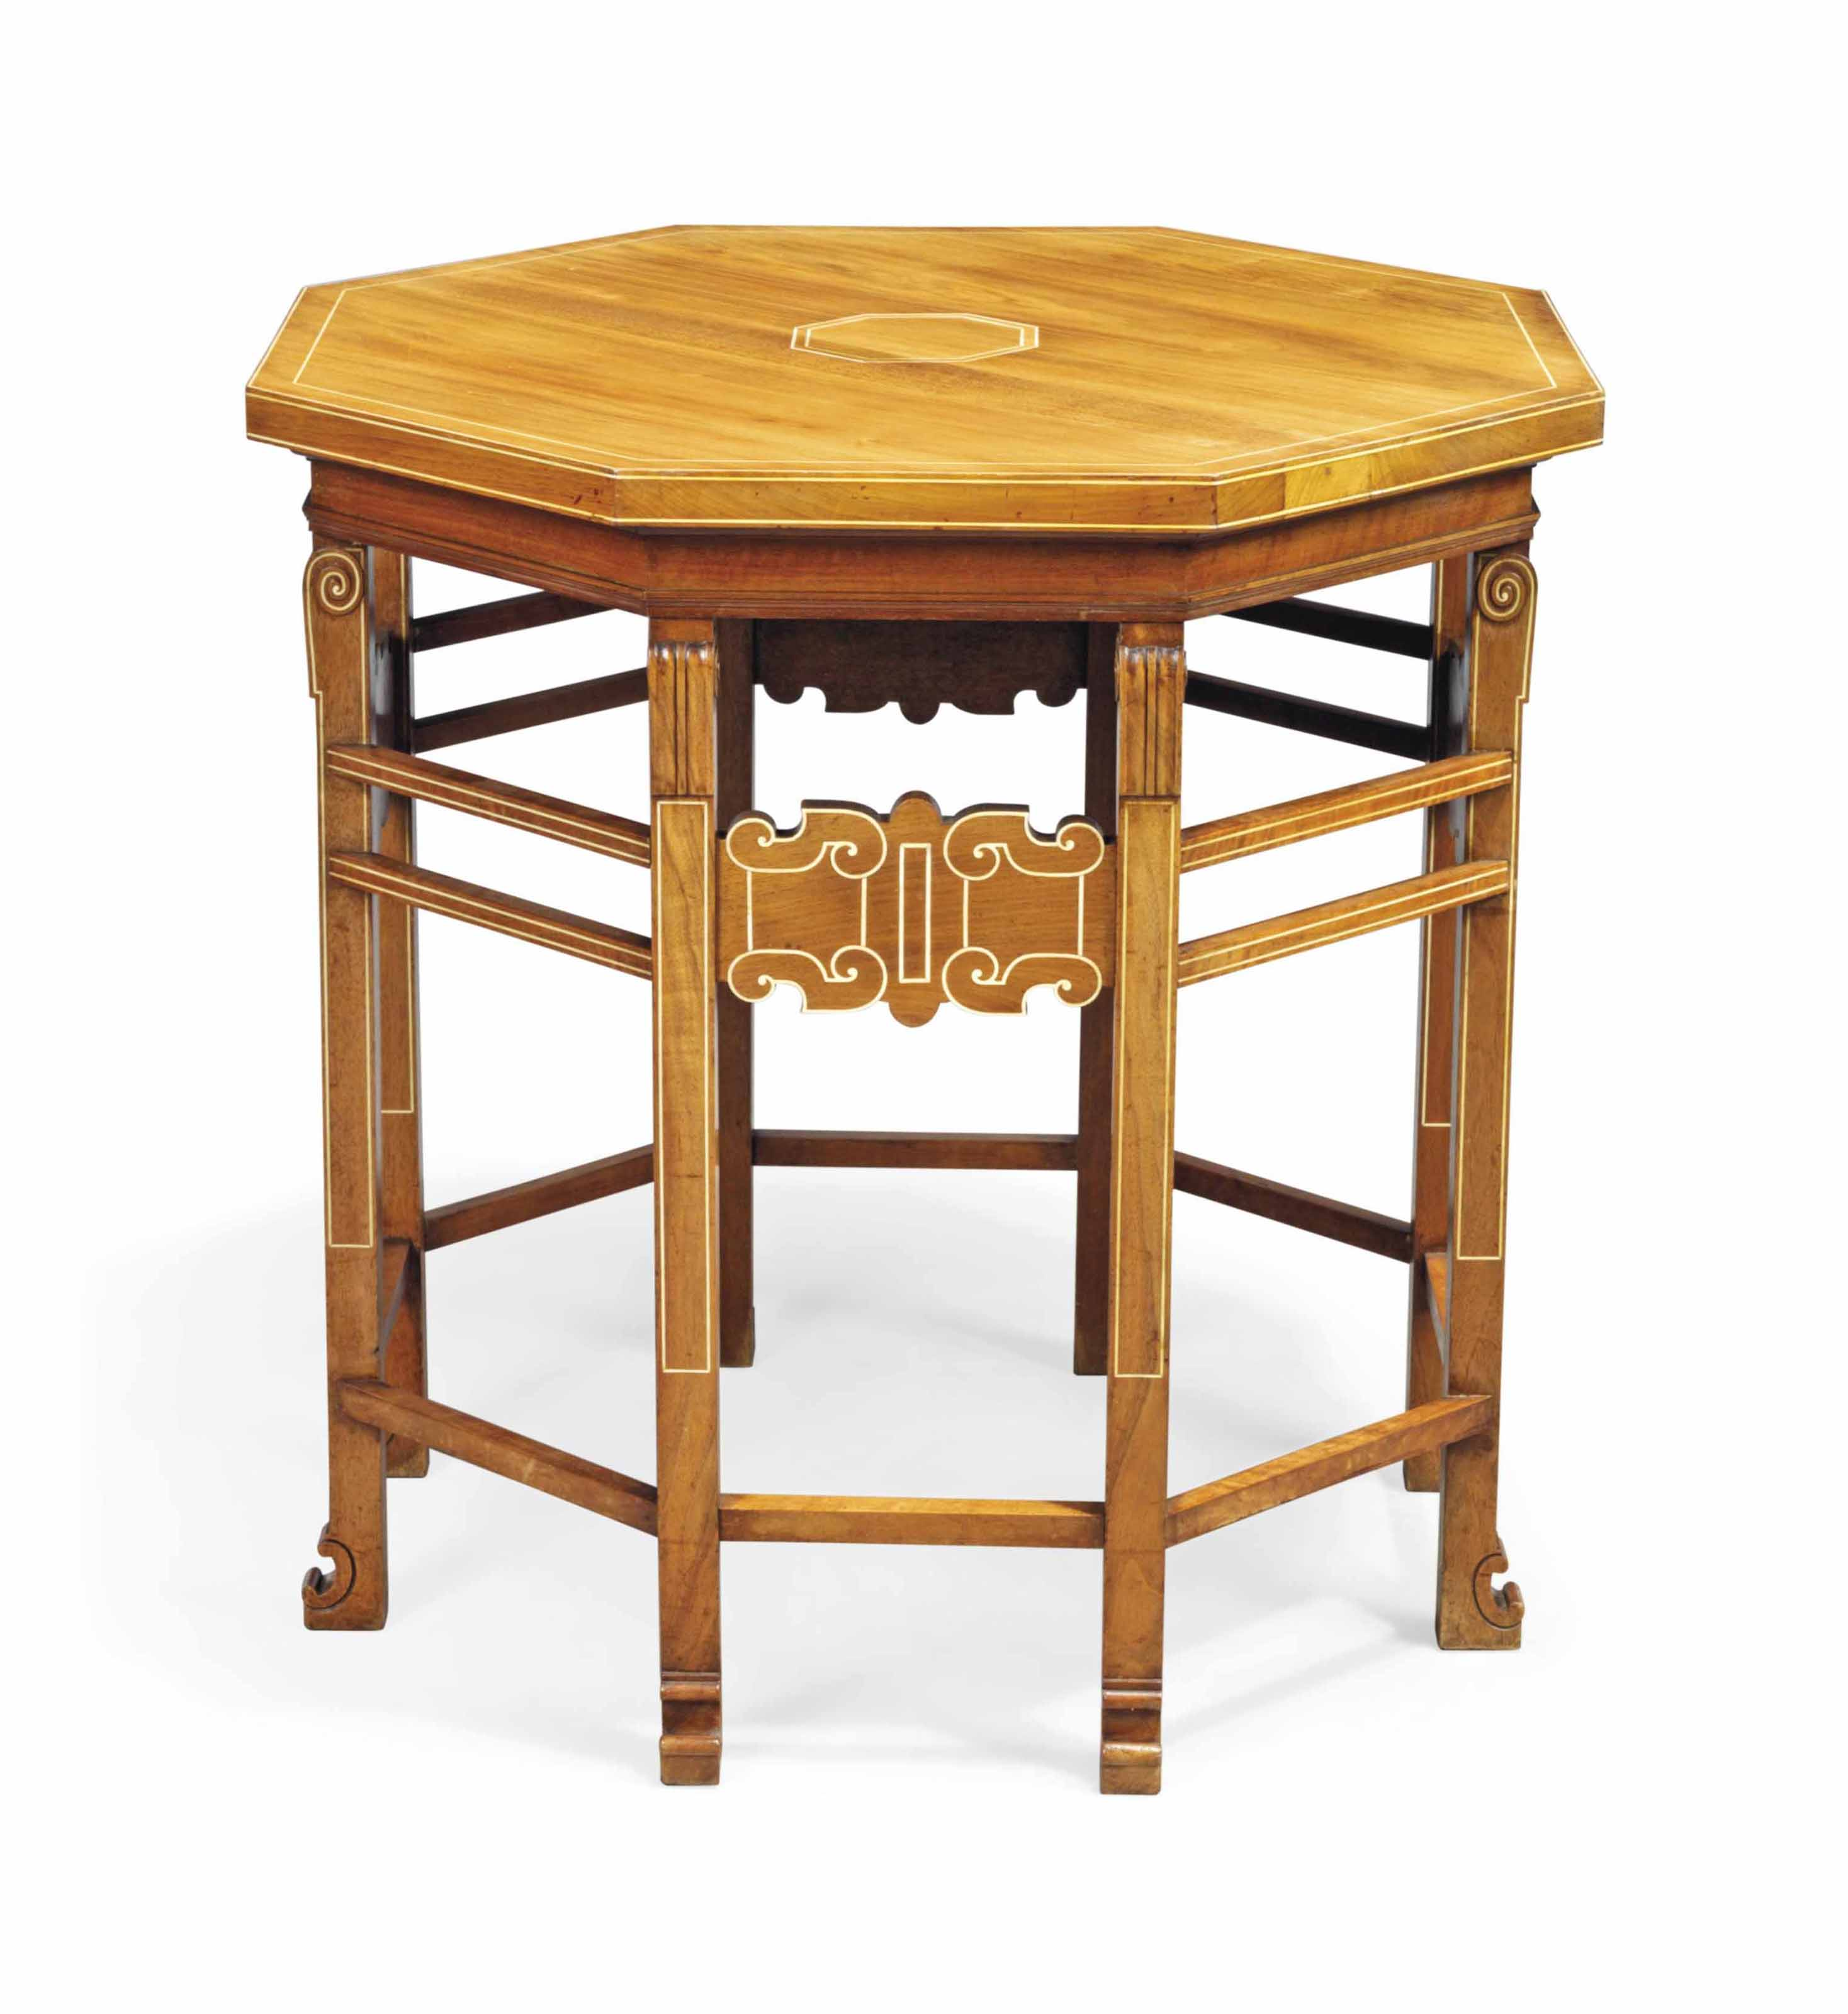 AN OCTAGONAL WALNUT OCCASIONAL TABLE IN THE STYLE OF EDWIN LUTYENS (1869-1944)